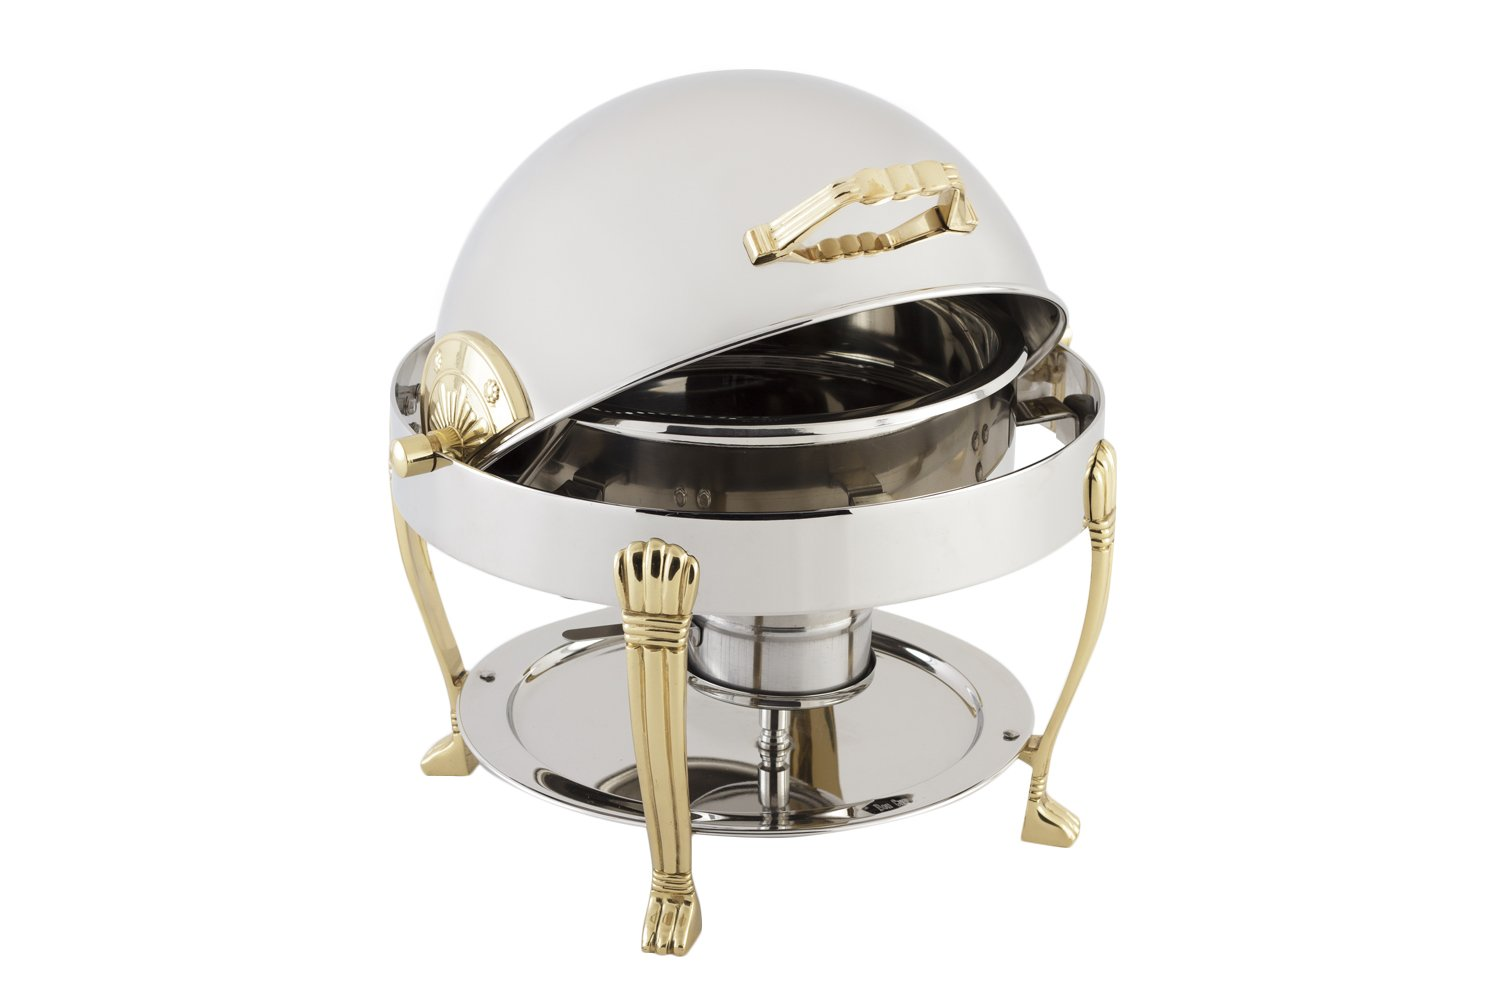 Bon Chef 12014 Stainless Steel Petite Round Chafing Dish with Aurora Legs, 3 Quart Capacity, 14